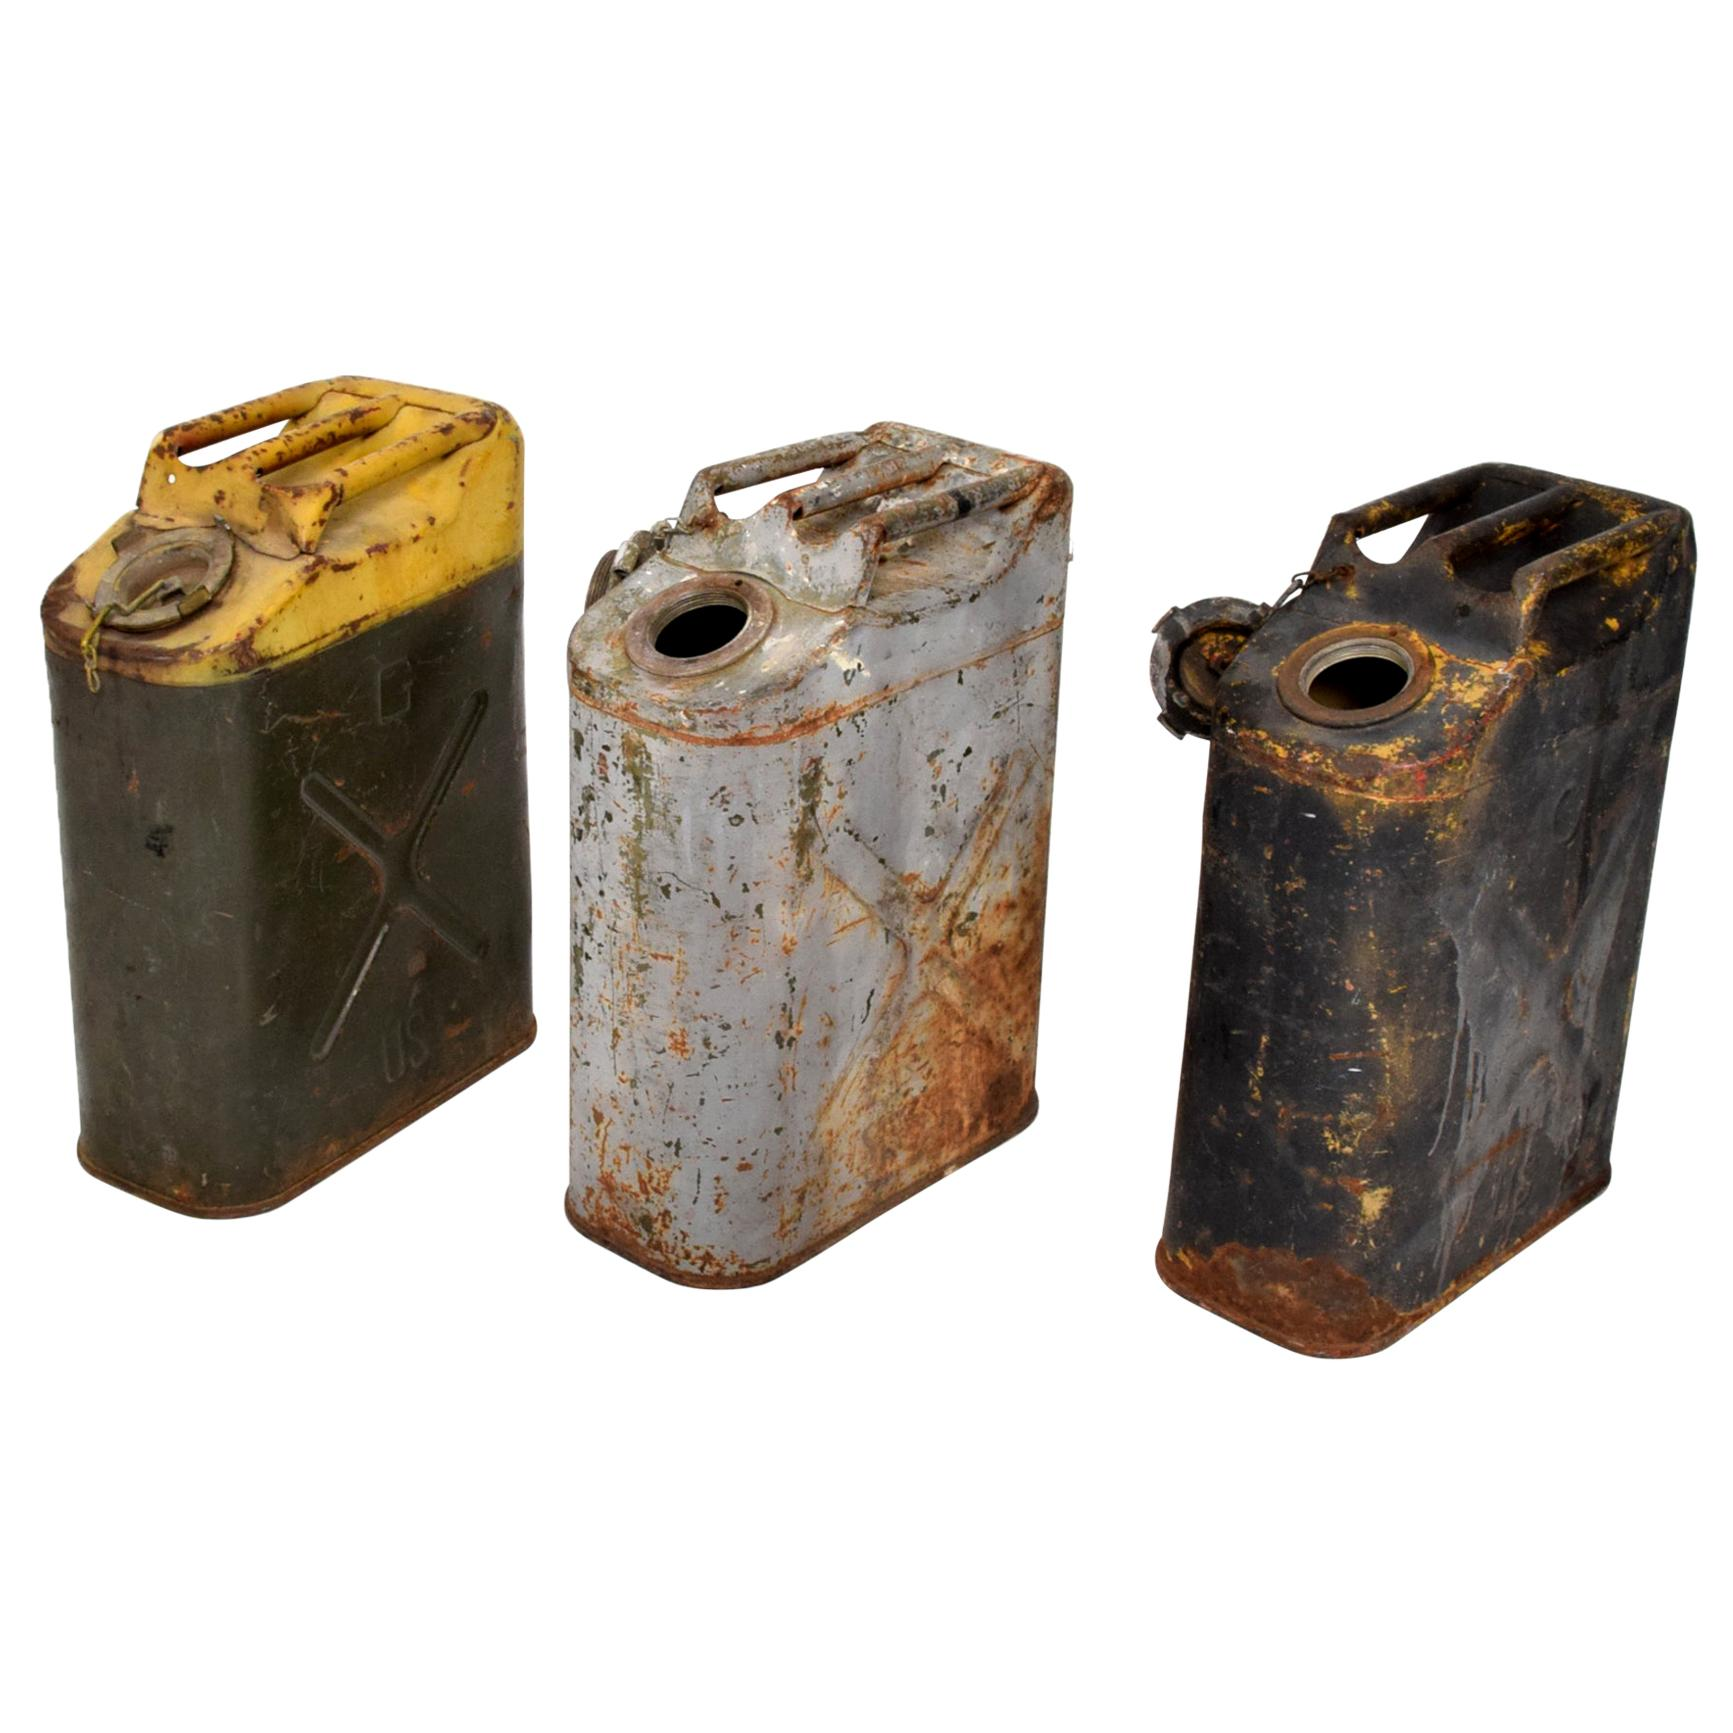 Fabulous Vintage Industrial Collectible US Military WWII Fuel Gas Tanks Set of 3